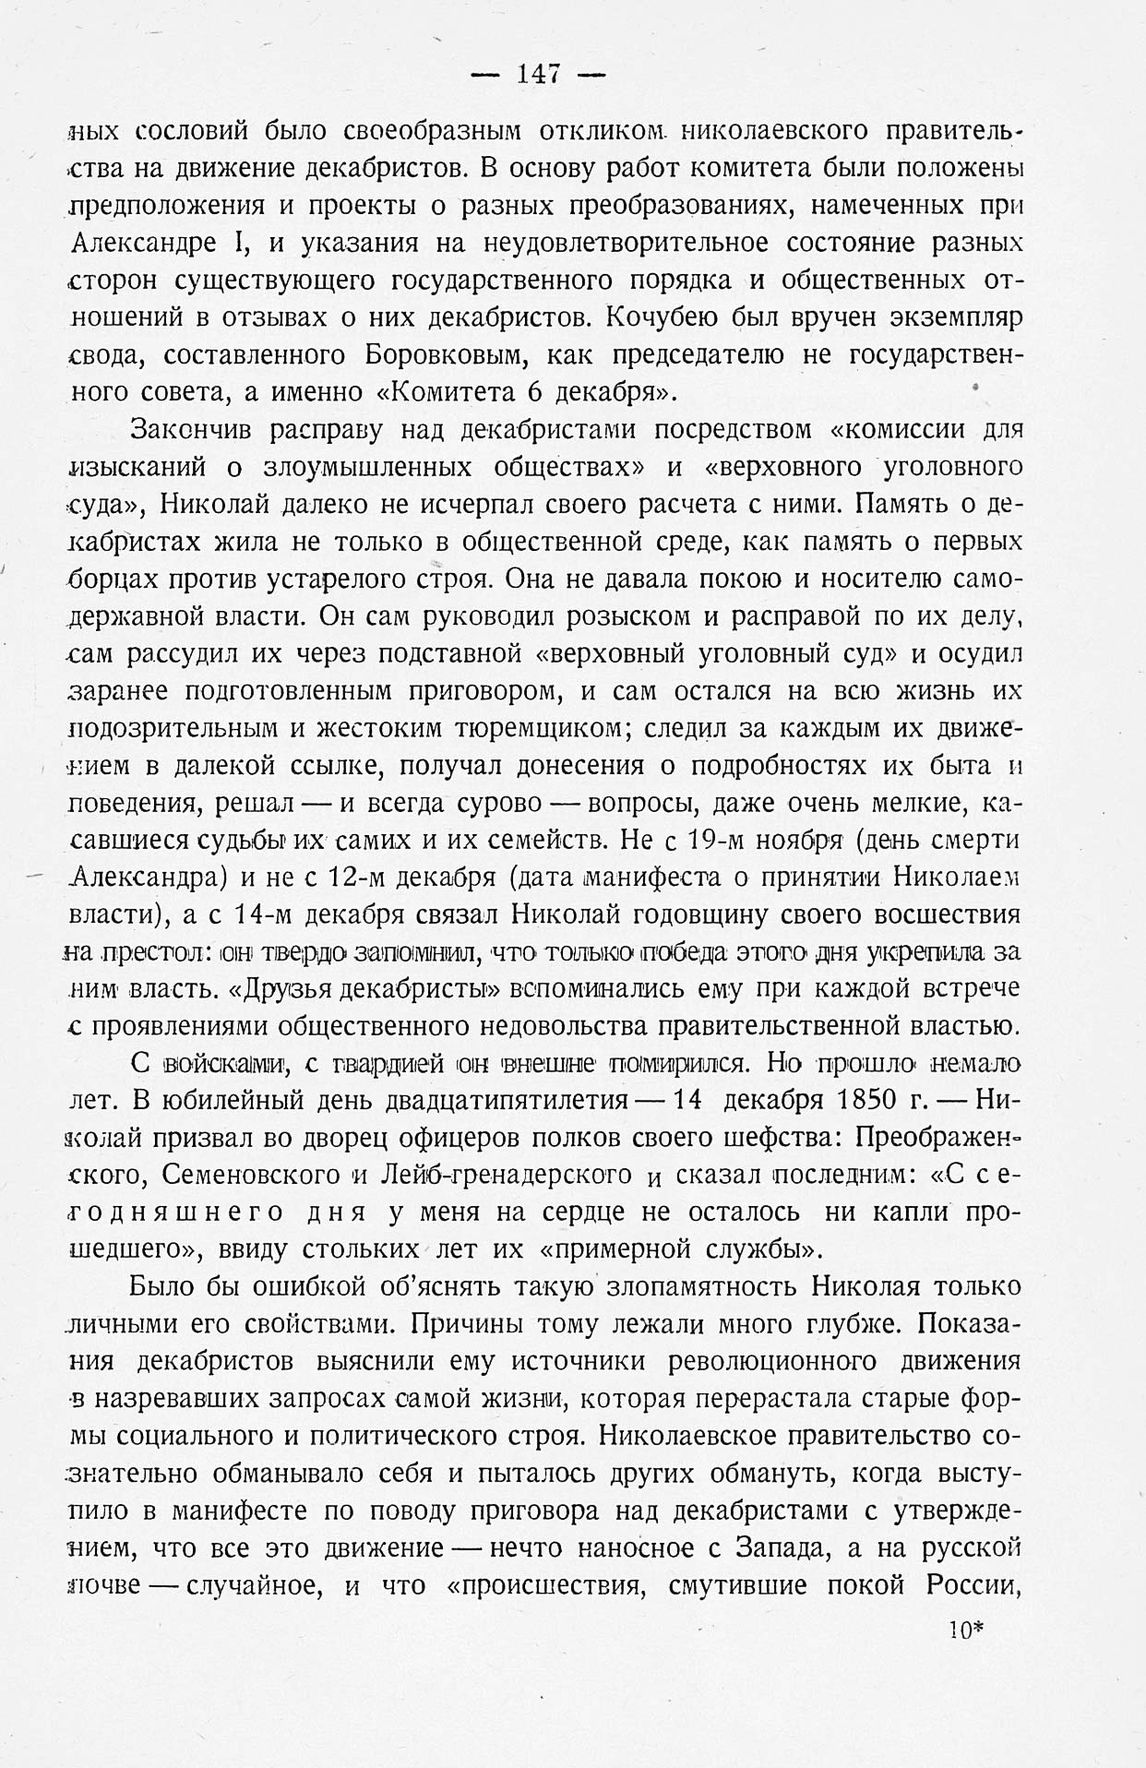 http://elib.shpl.ru/pages/566044/zooms/7